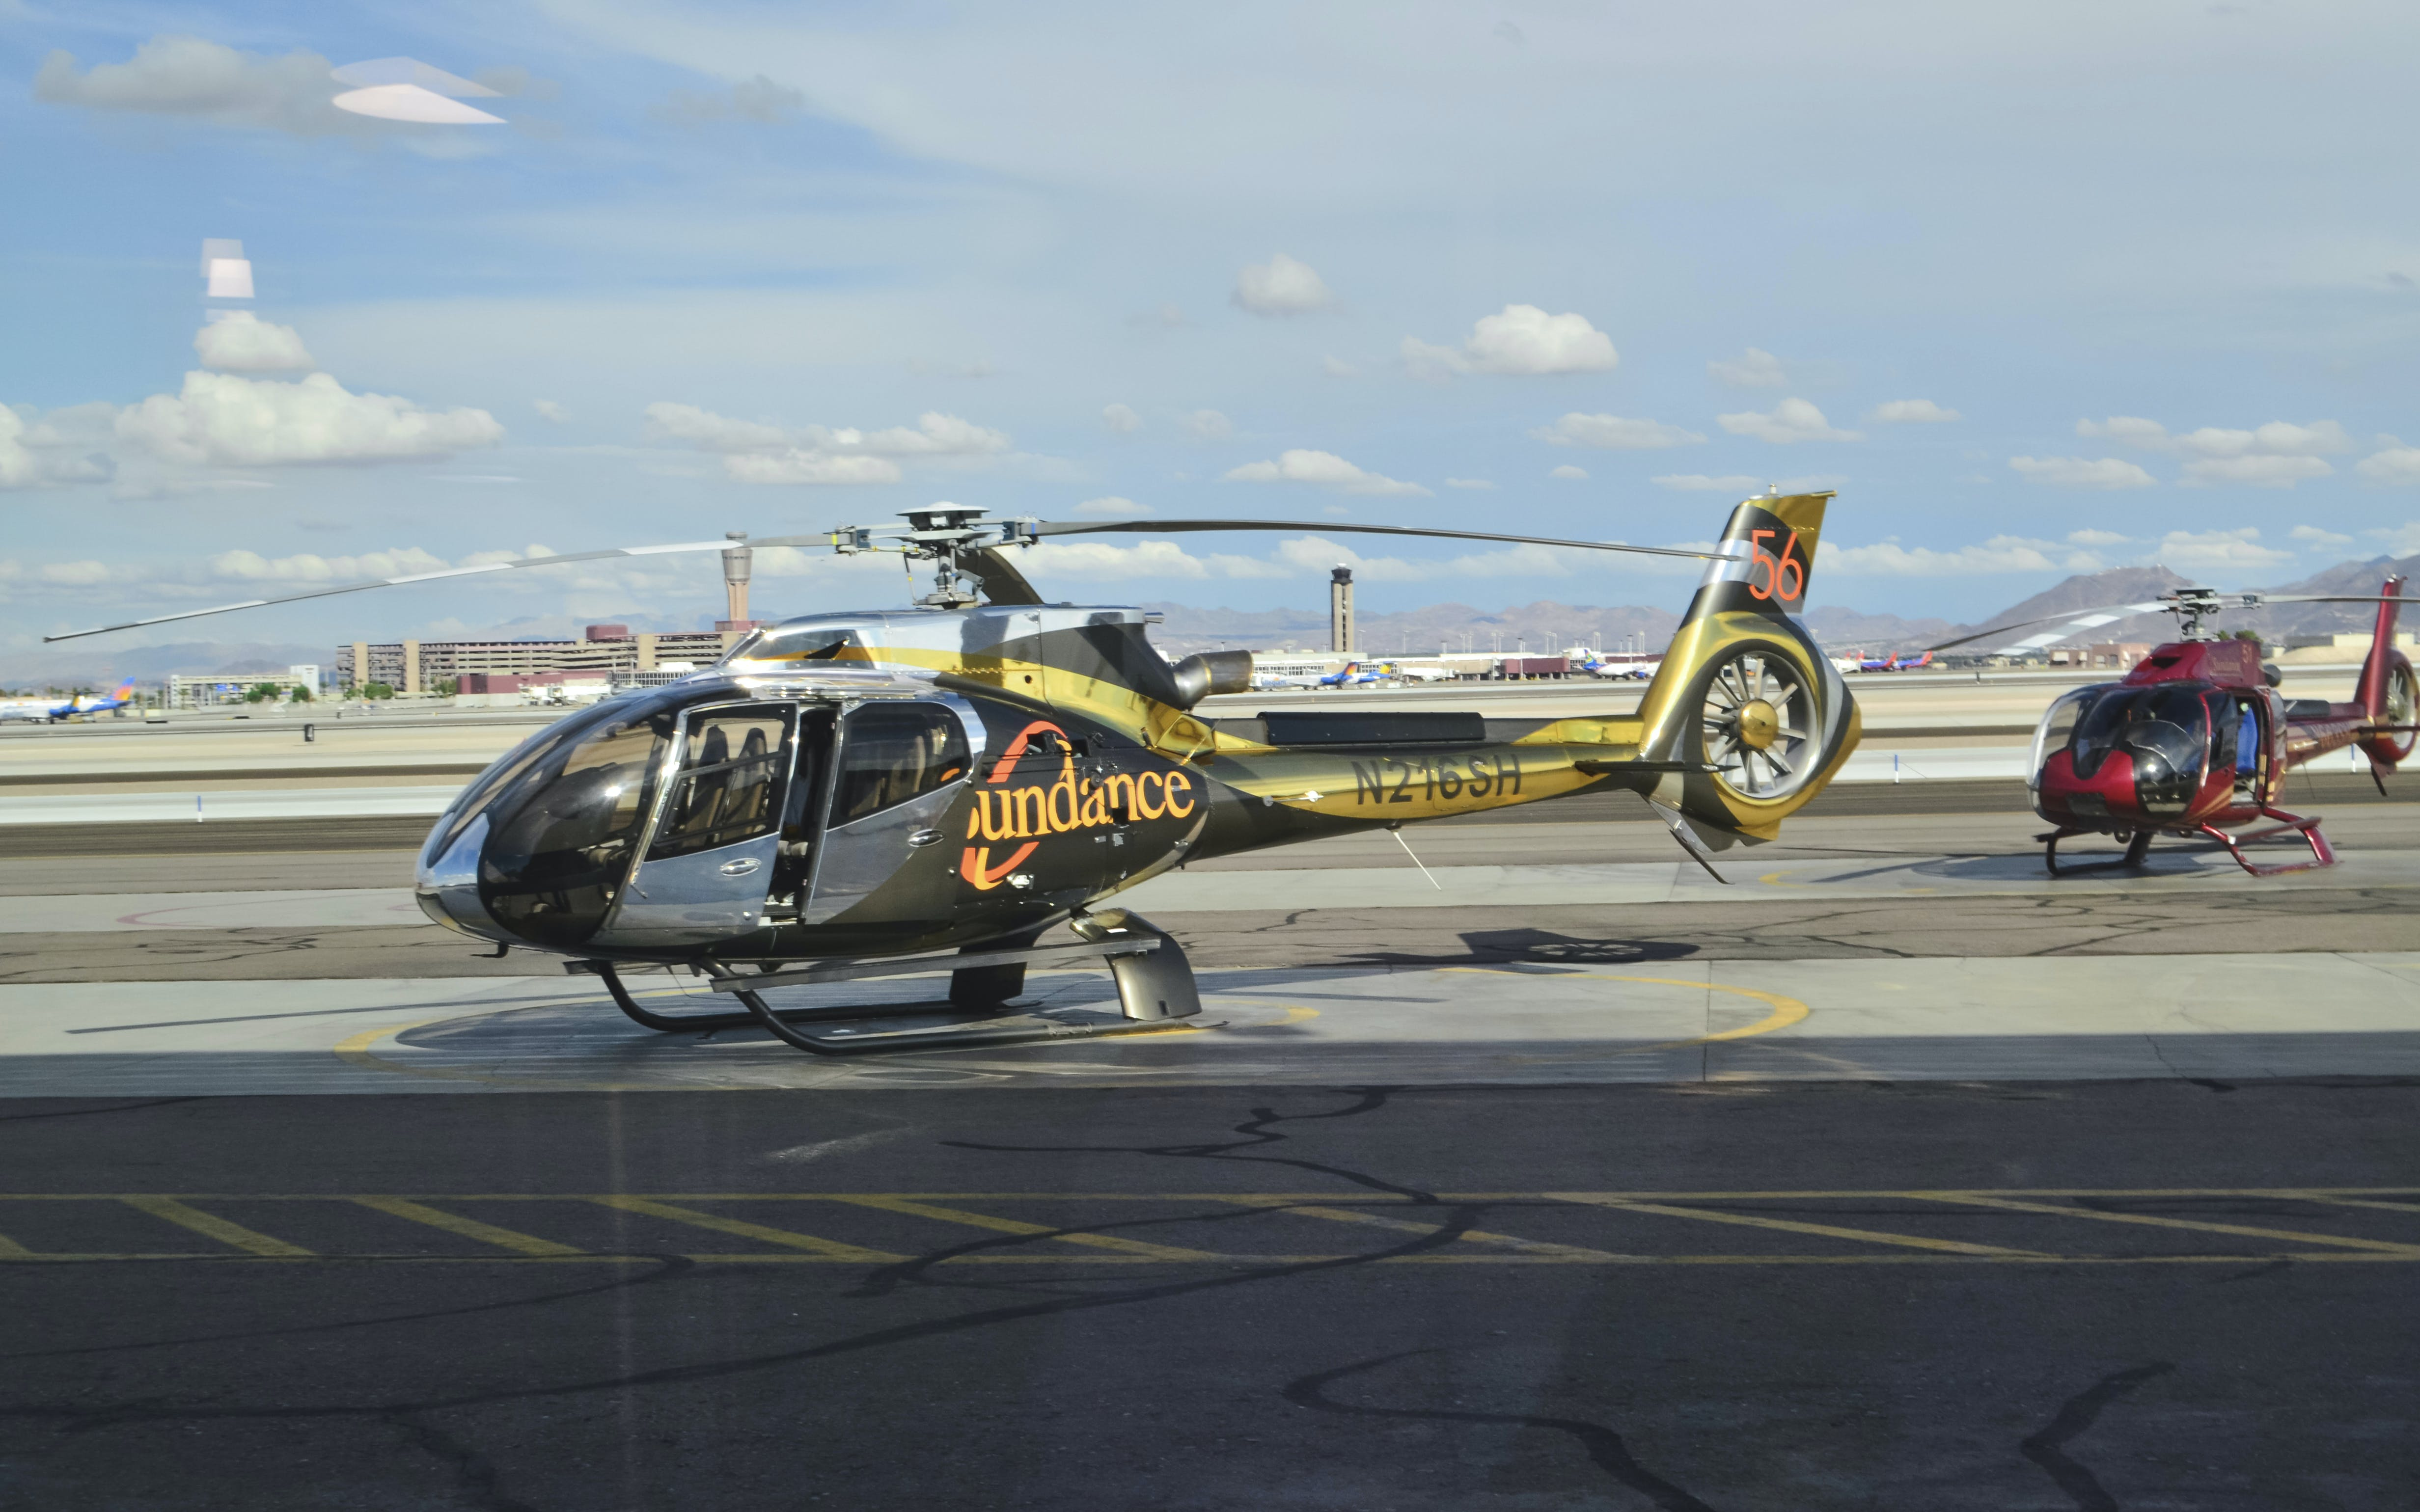 vegas to gc west rim helicopter tour with river cruise and flight over lv strip-2